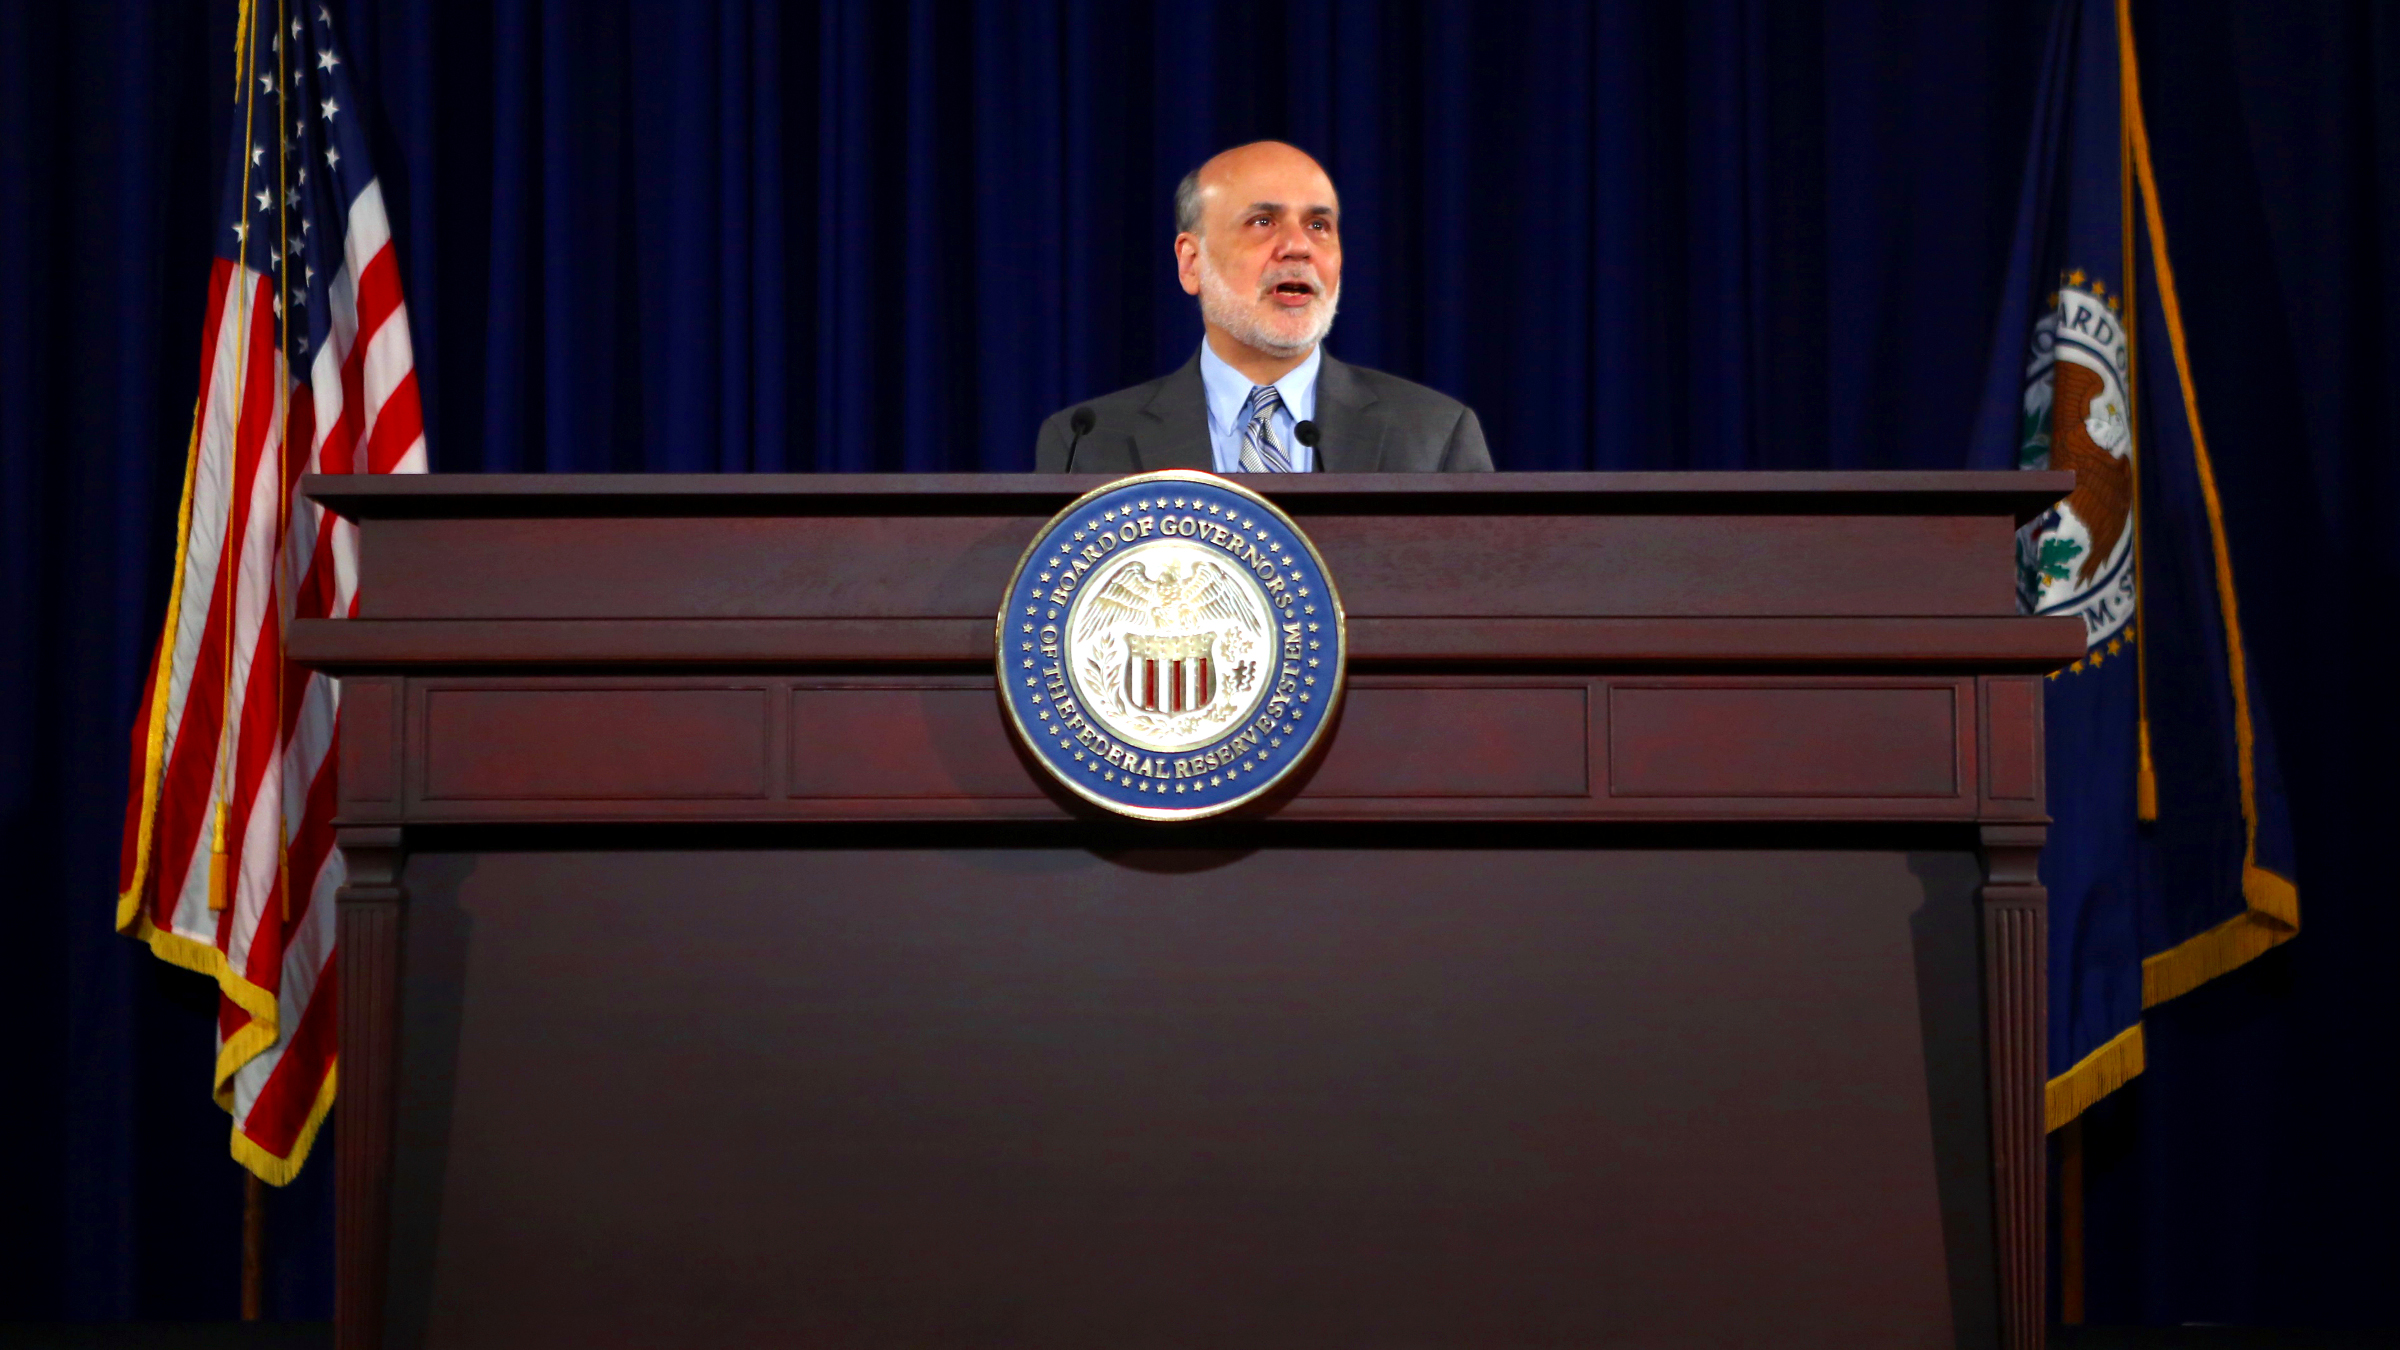 U.S. Federal Reserve Board Chairman Ben Bernanke holds a news conference following the Fed's two-day Federal Open Market Committee (FOMC) meeting in Washington September 18, 2013. The Fed said on Wednesday that it would continue buying bonds at an $85 billion monthly pace for now, expressing concerns that a sharp rise in borrowing costs in recent months could weigh on the economy.